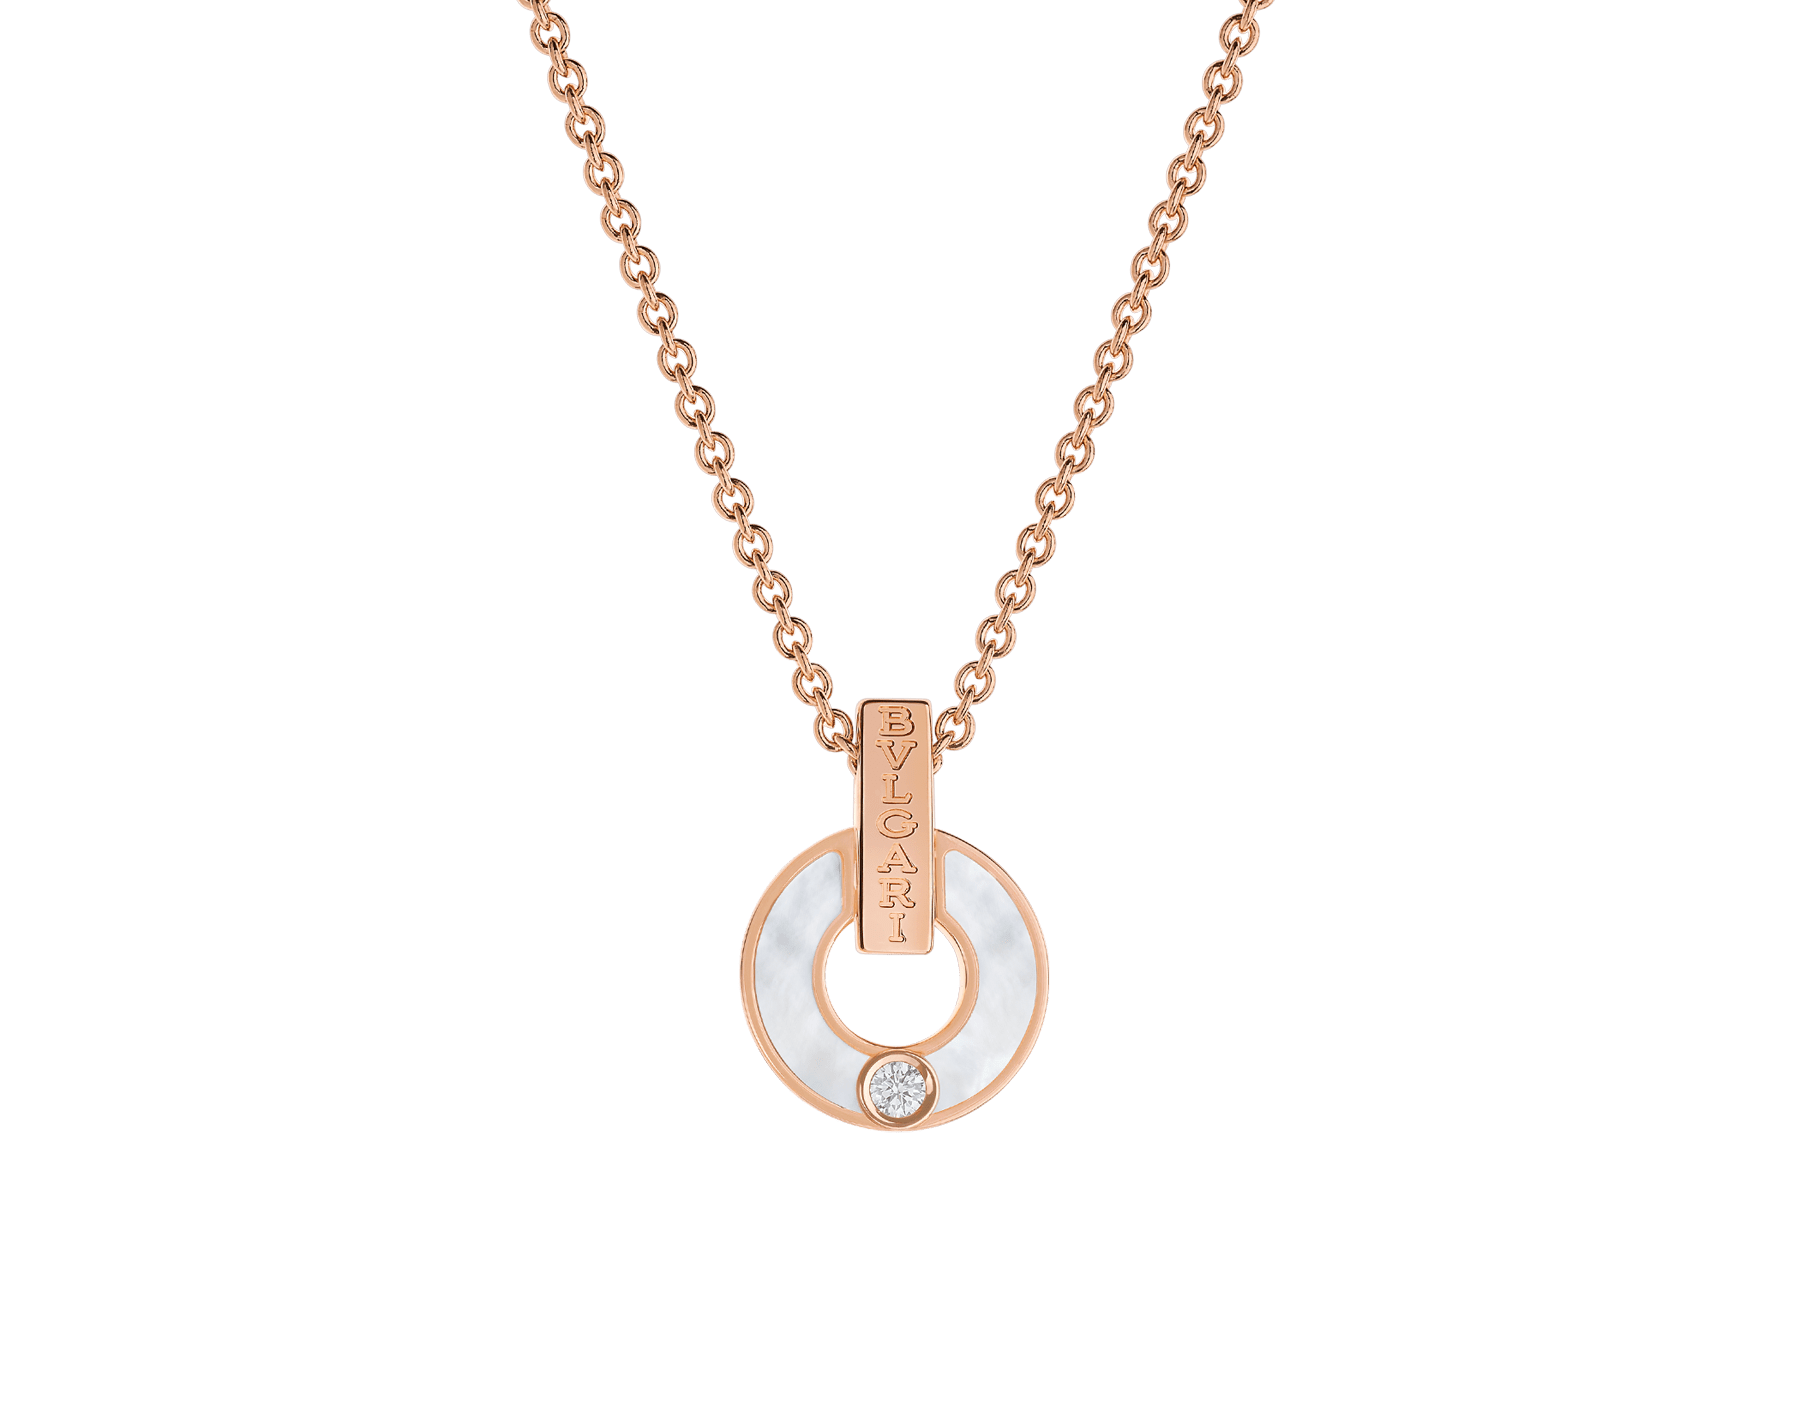 BVLGARI BVLGARI Openwork 18 kt rose gold necklace set with mother-of-pearl elements and a round brilliant-cut diamond 357546 image 1